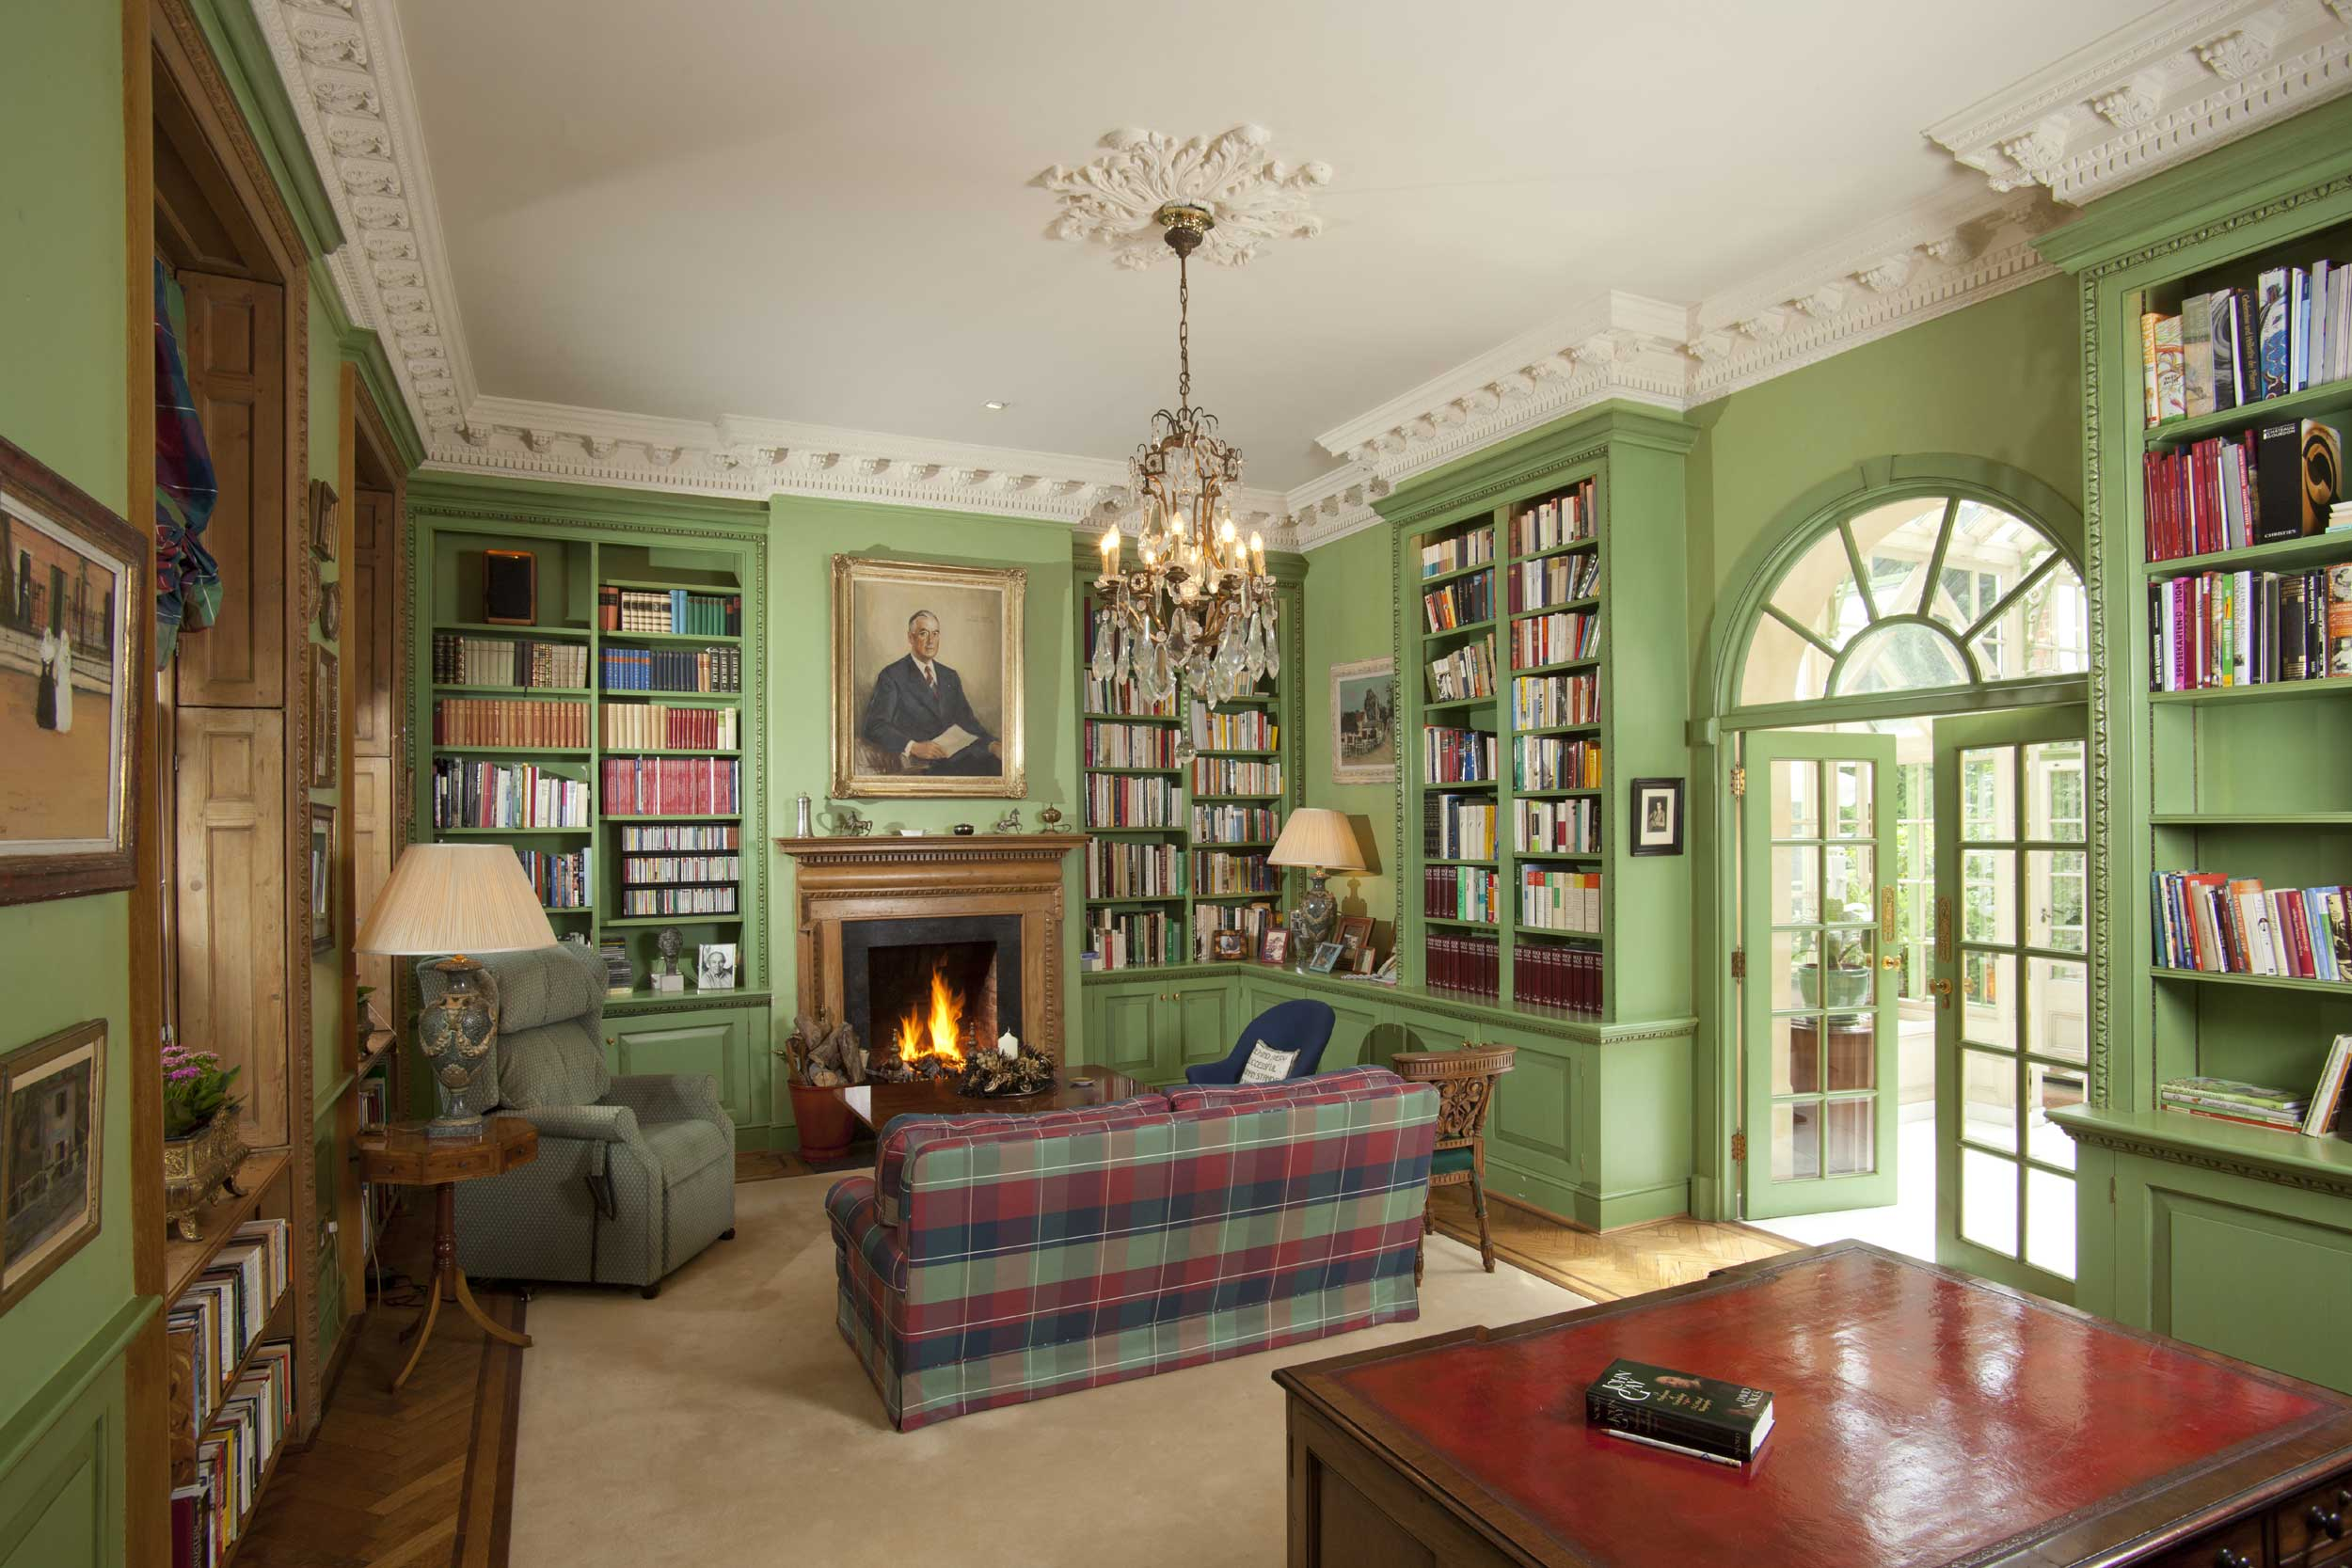 This grand residence features magnificent period details including this library accoutered in an elegant shade of green.